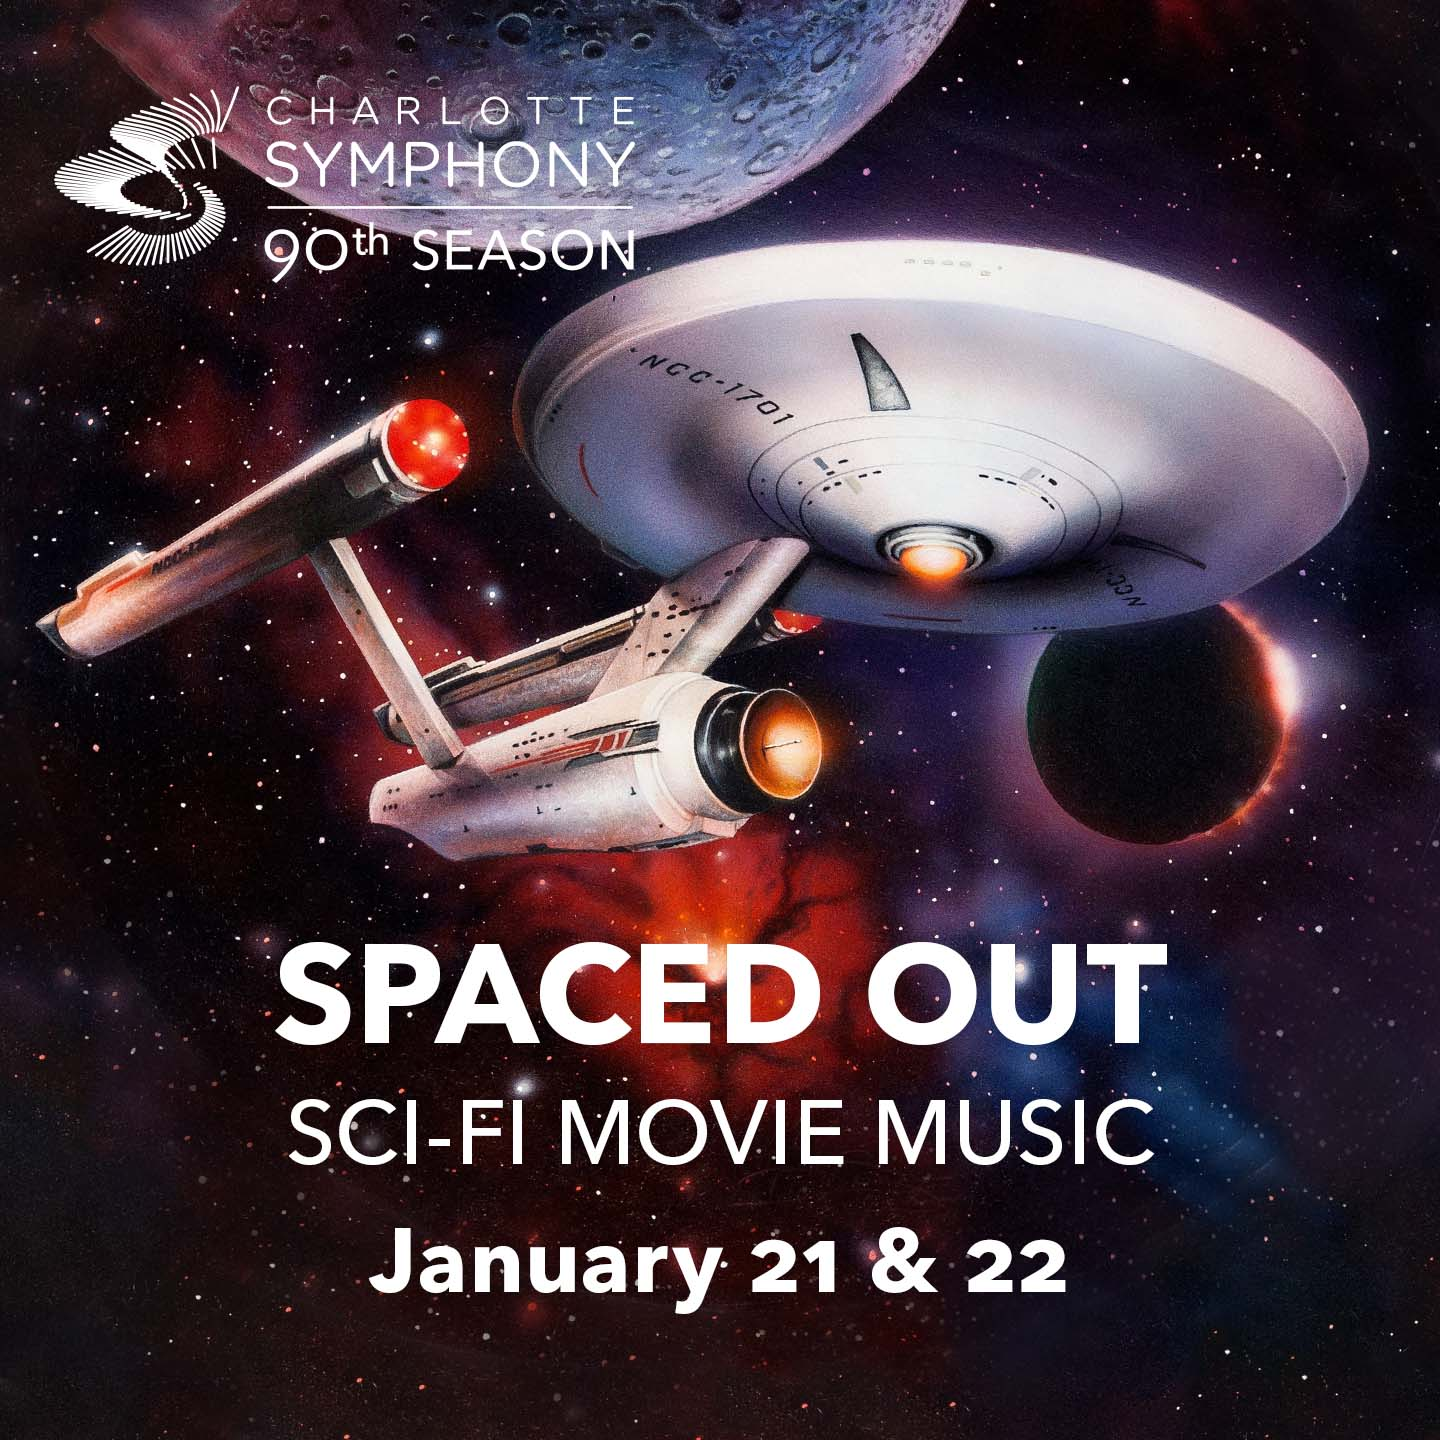 Charlotte Symphony Orchestra presents Spaced Out